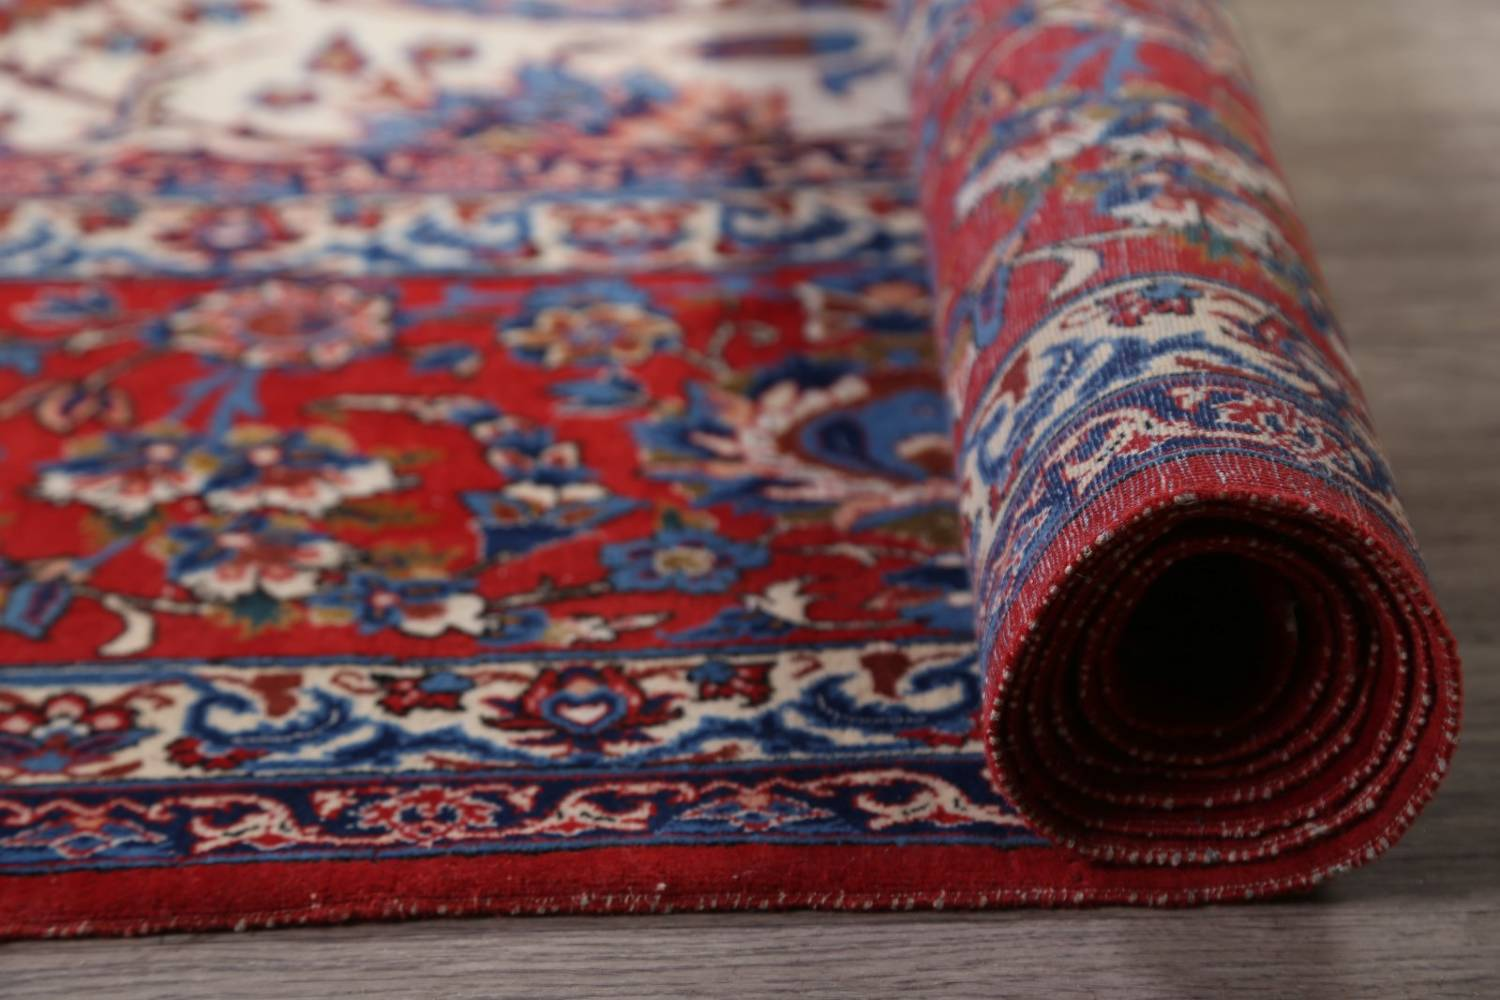 Antique Floral 10x16 Isfahan Persian Area Rug image 26